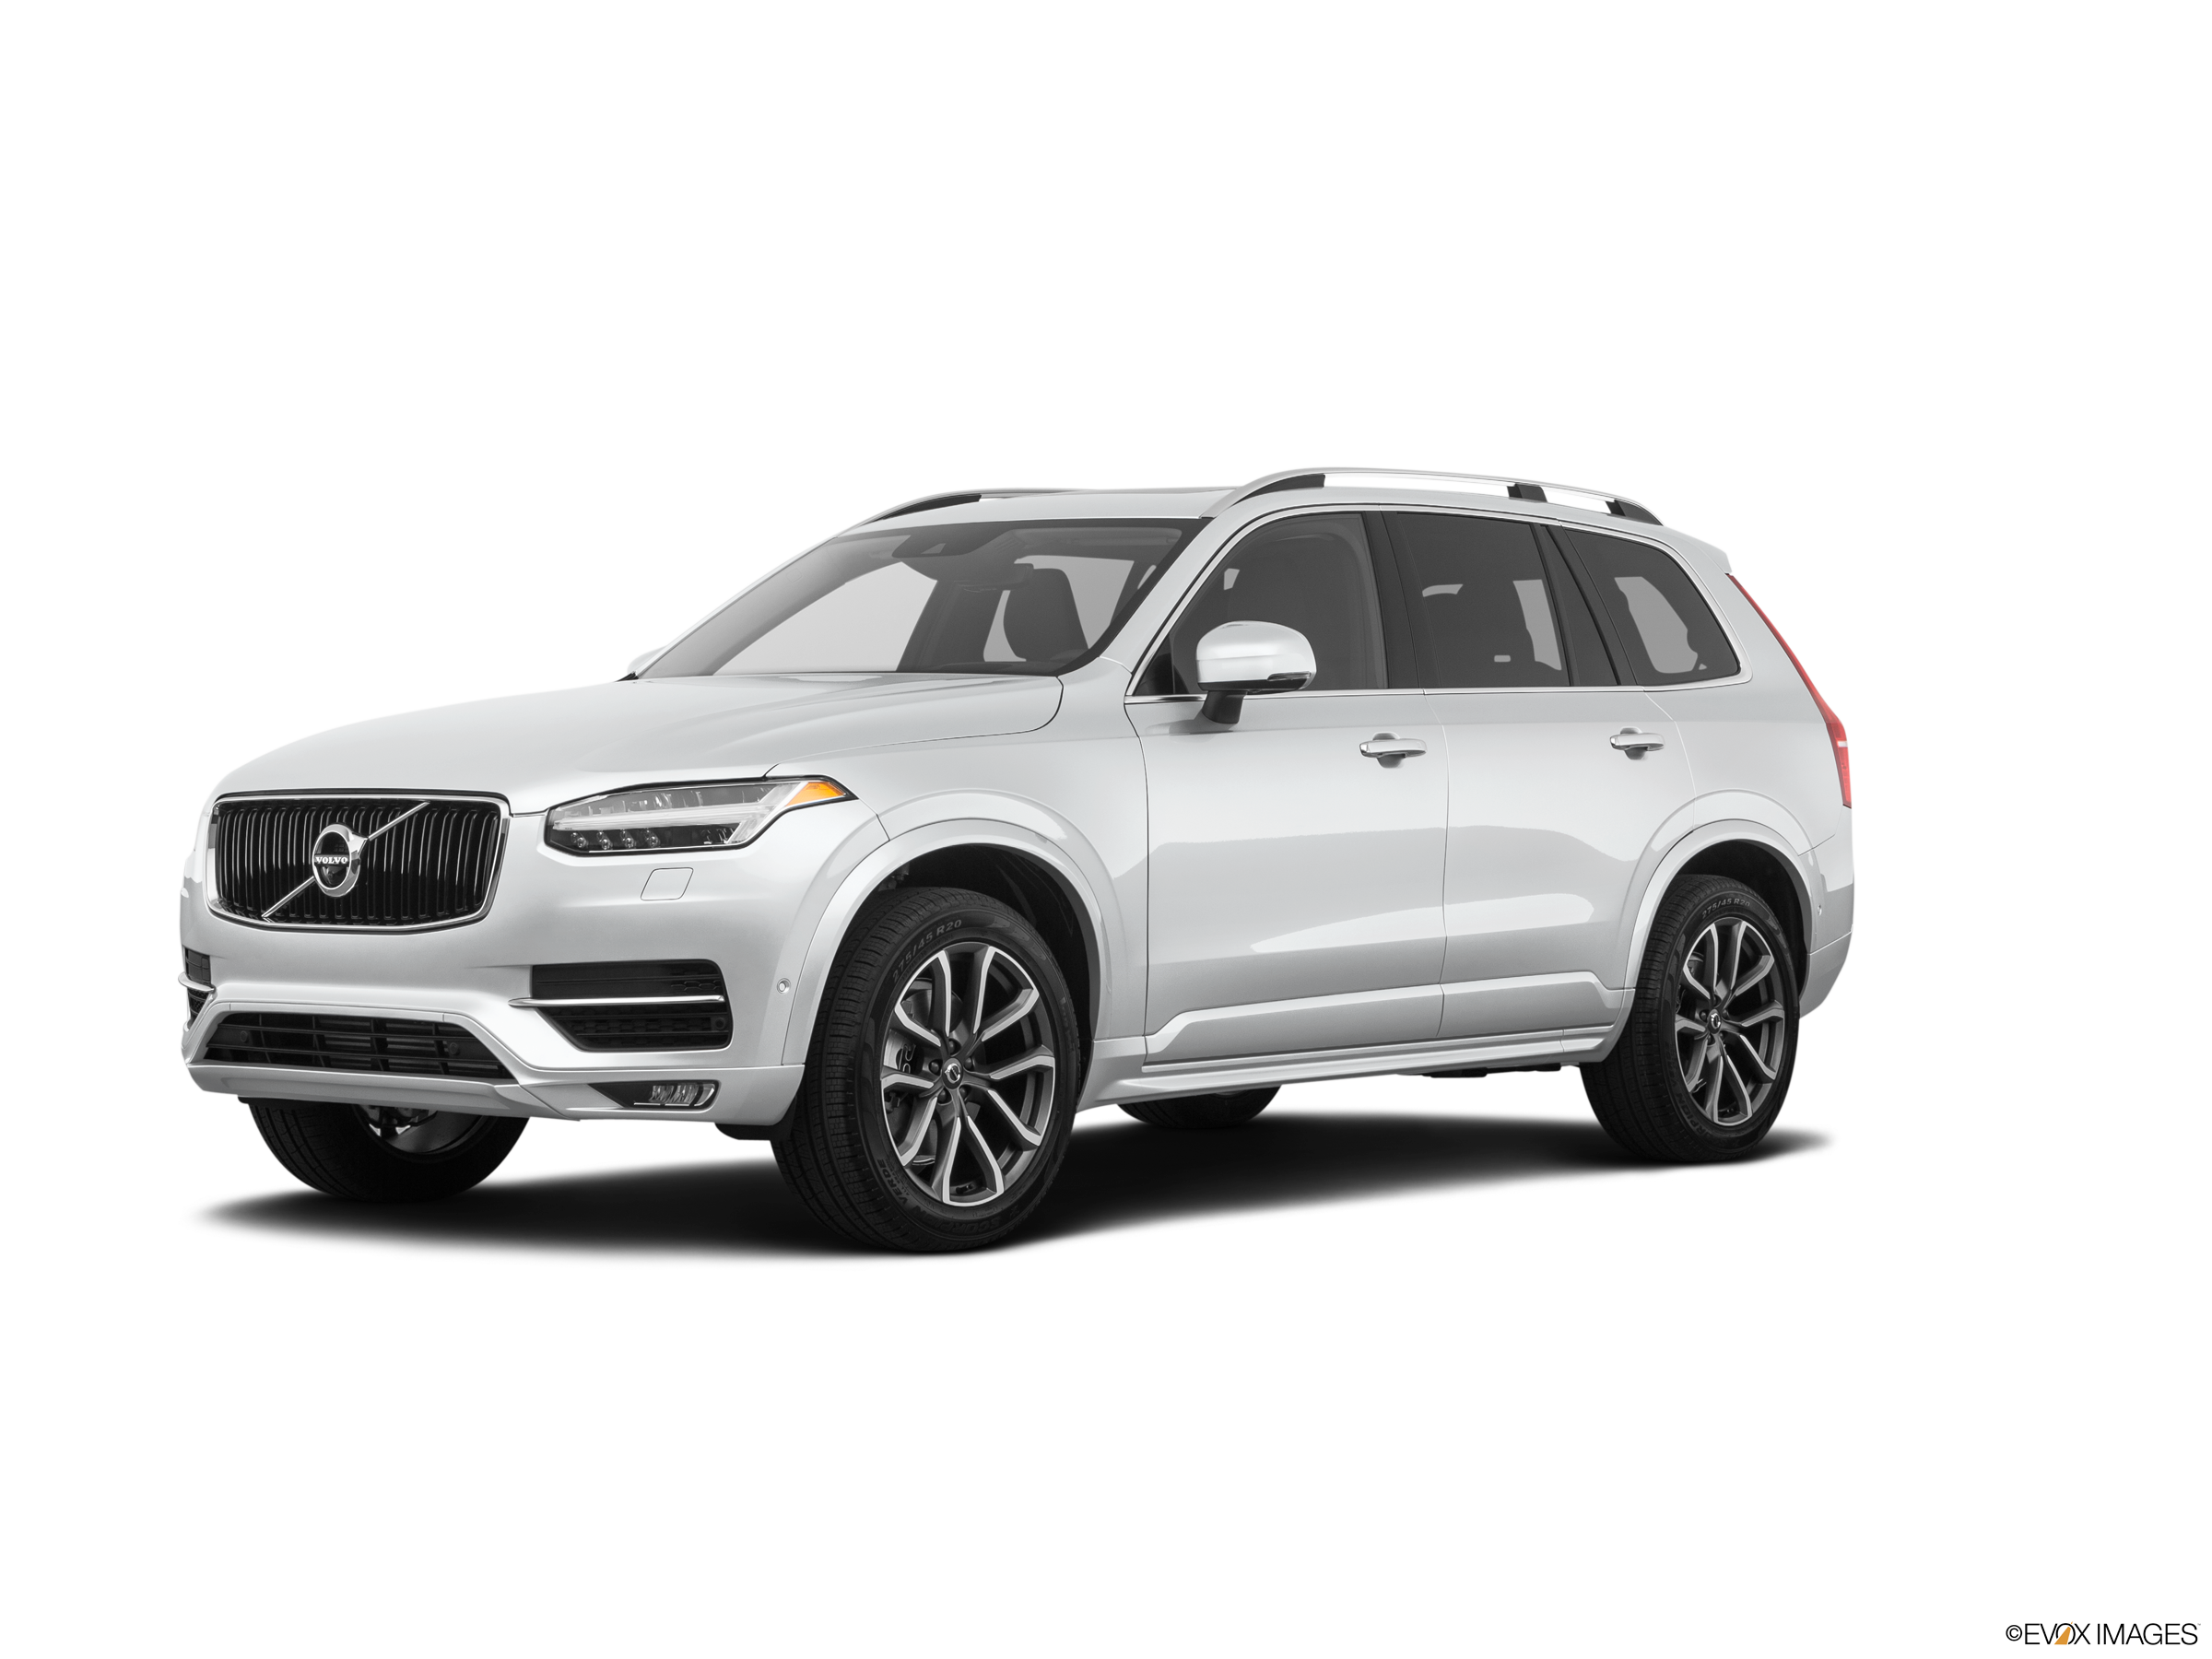 New 2019 Volvo XC90 T5 Momentum Prices | Kelley Blue Book